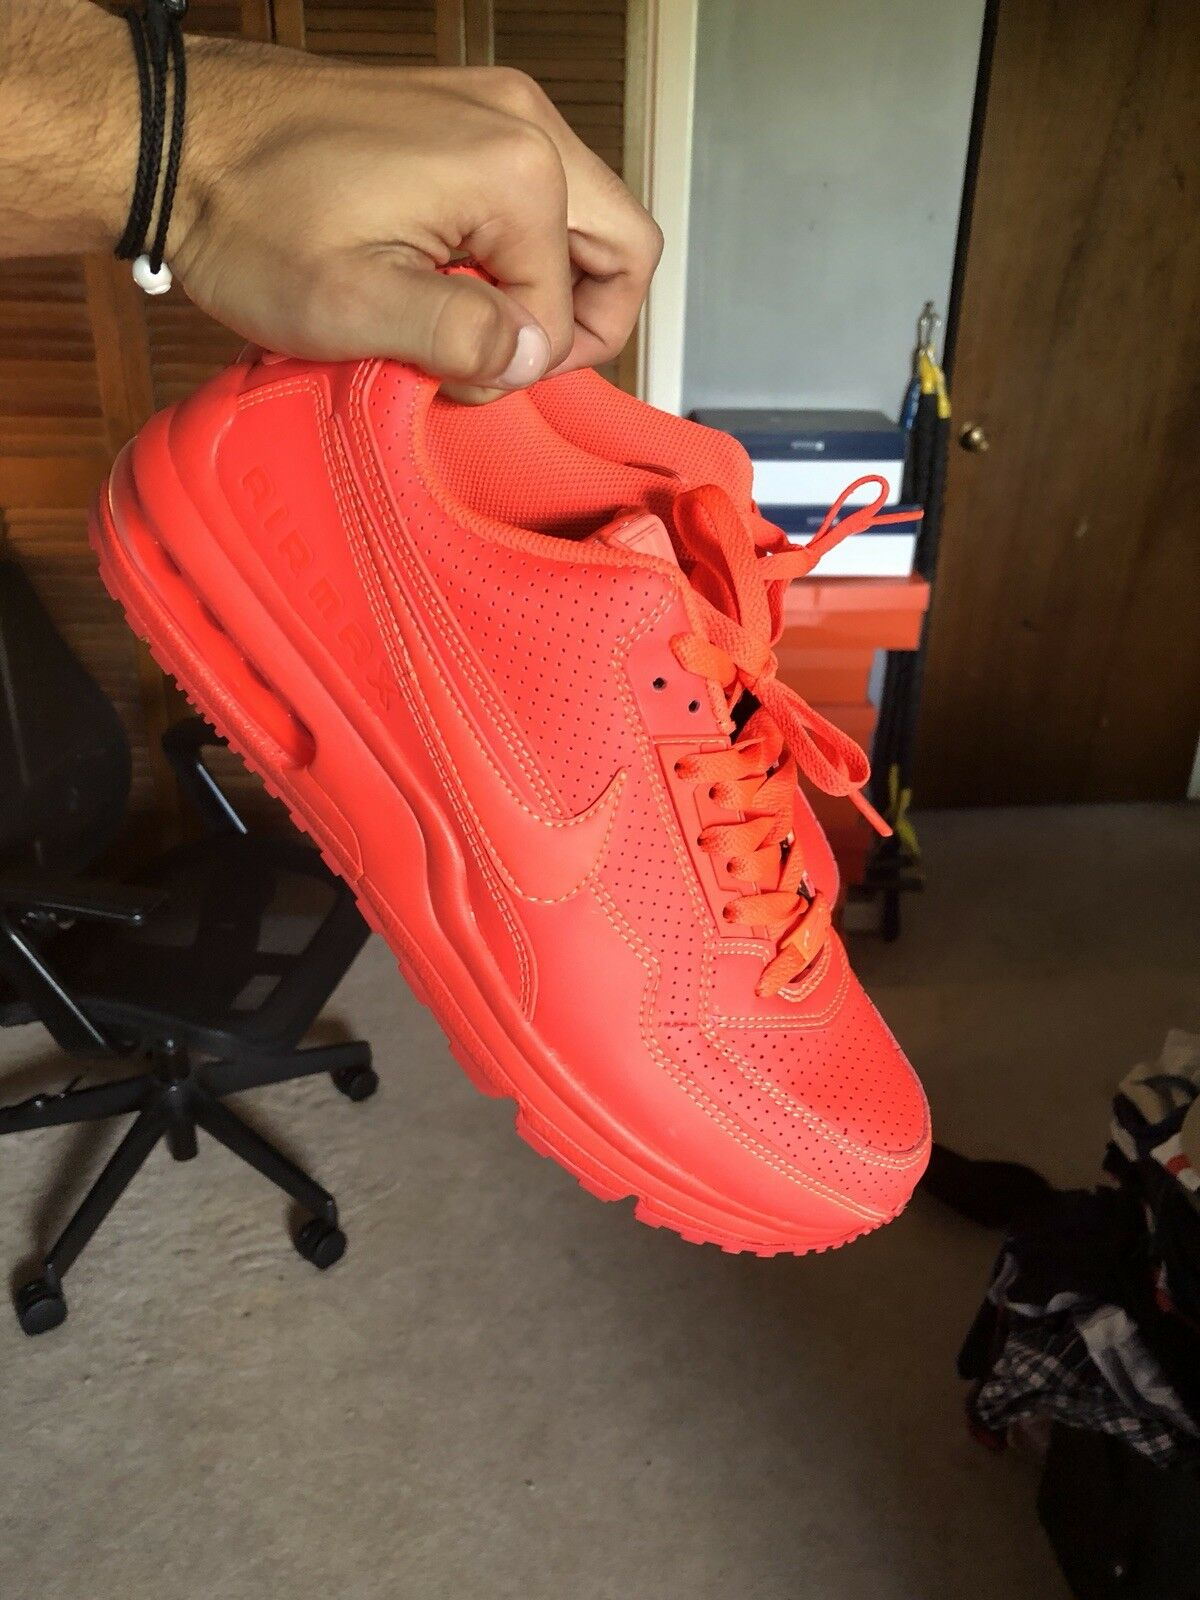 Red Nike Airmax  Cheap and fashionable